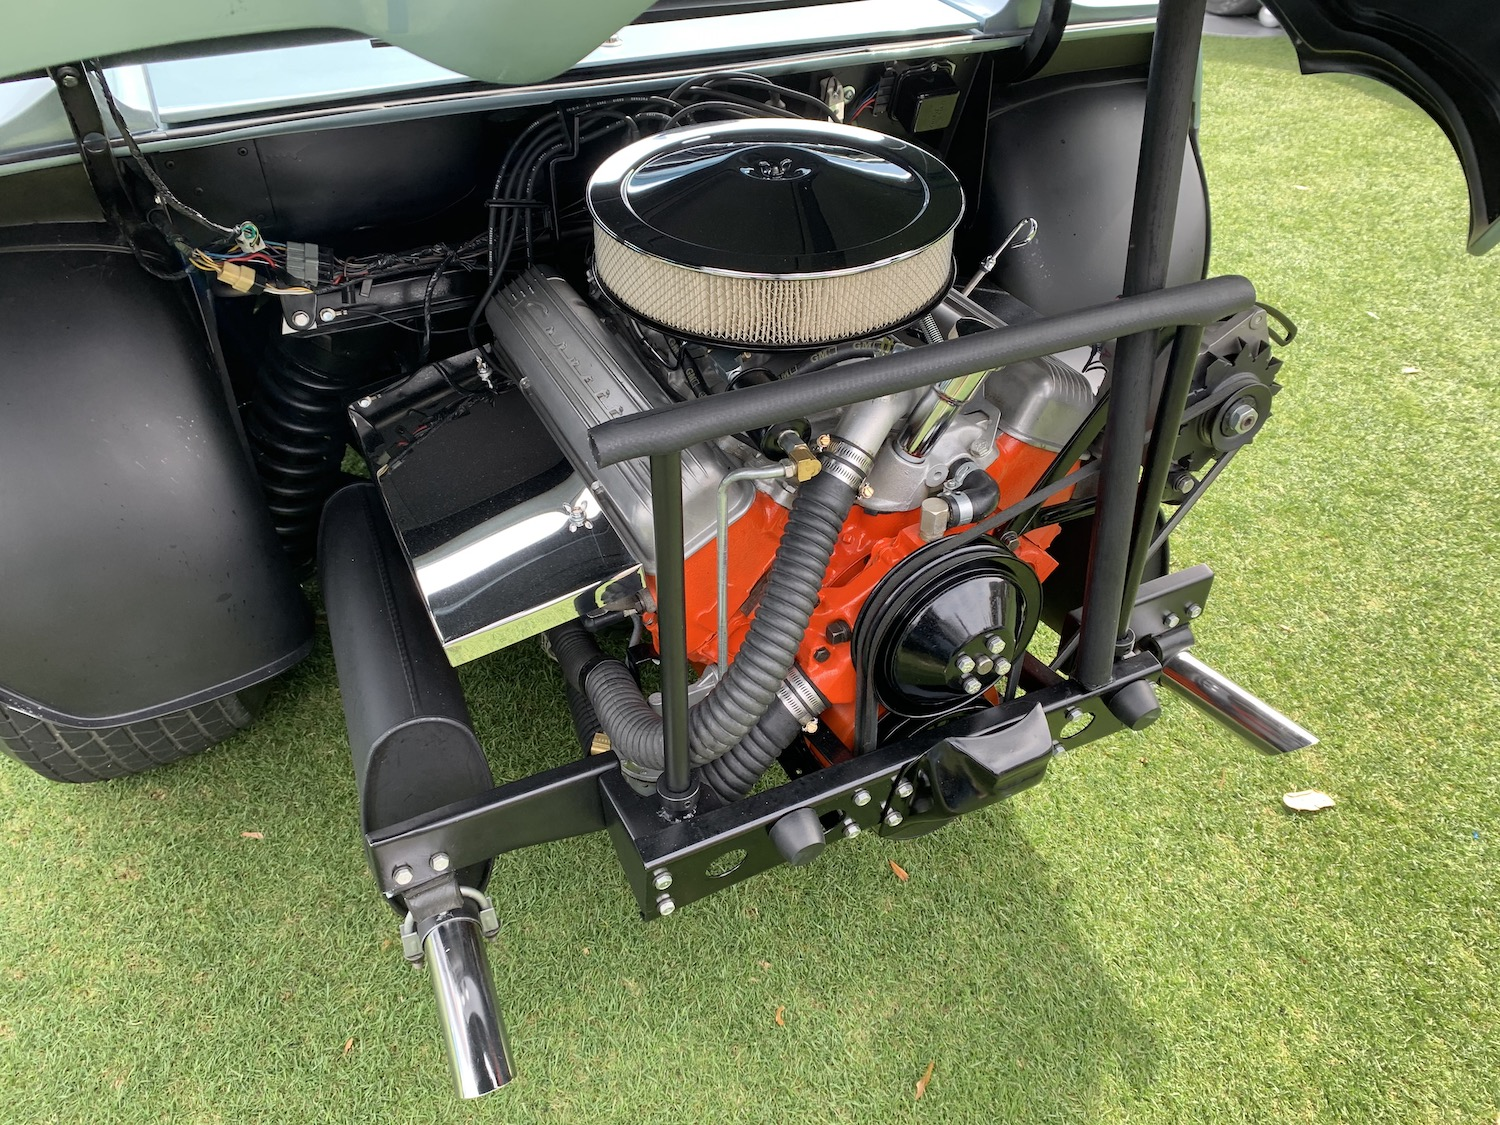 1964 Chevrolet Engineering XP-819 engine